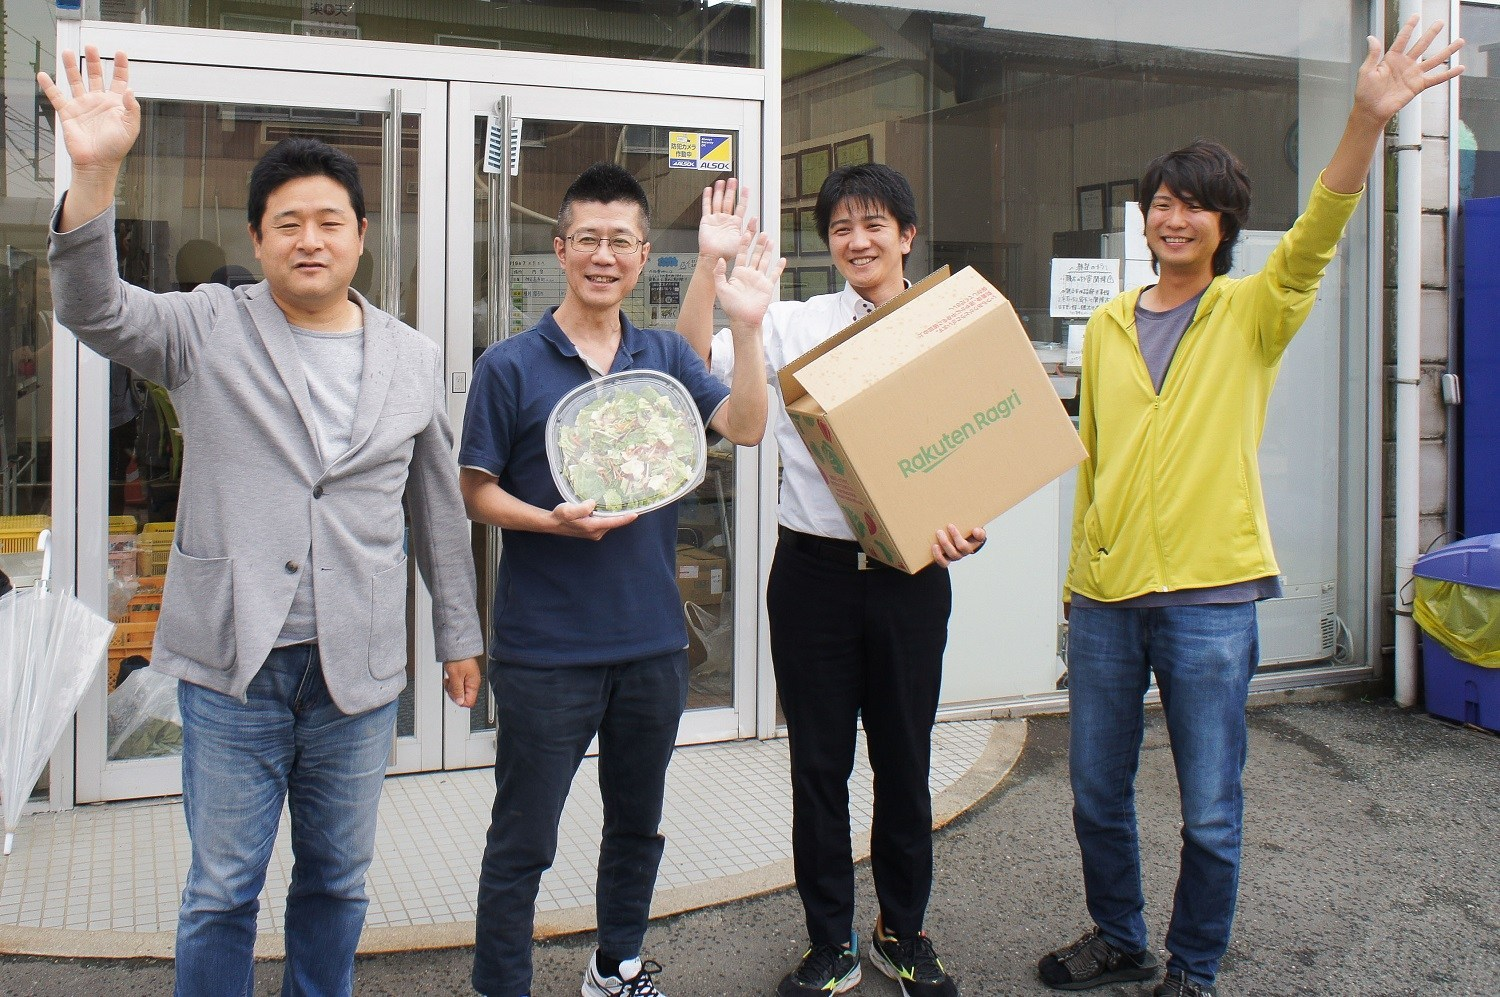 Rakuten Agriculture is working to bring real change to Japan's organic food industry ⁠— and the communities that rely on it for their livelihoods.